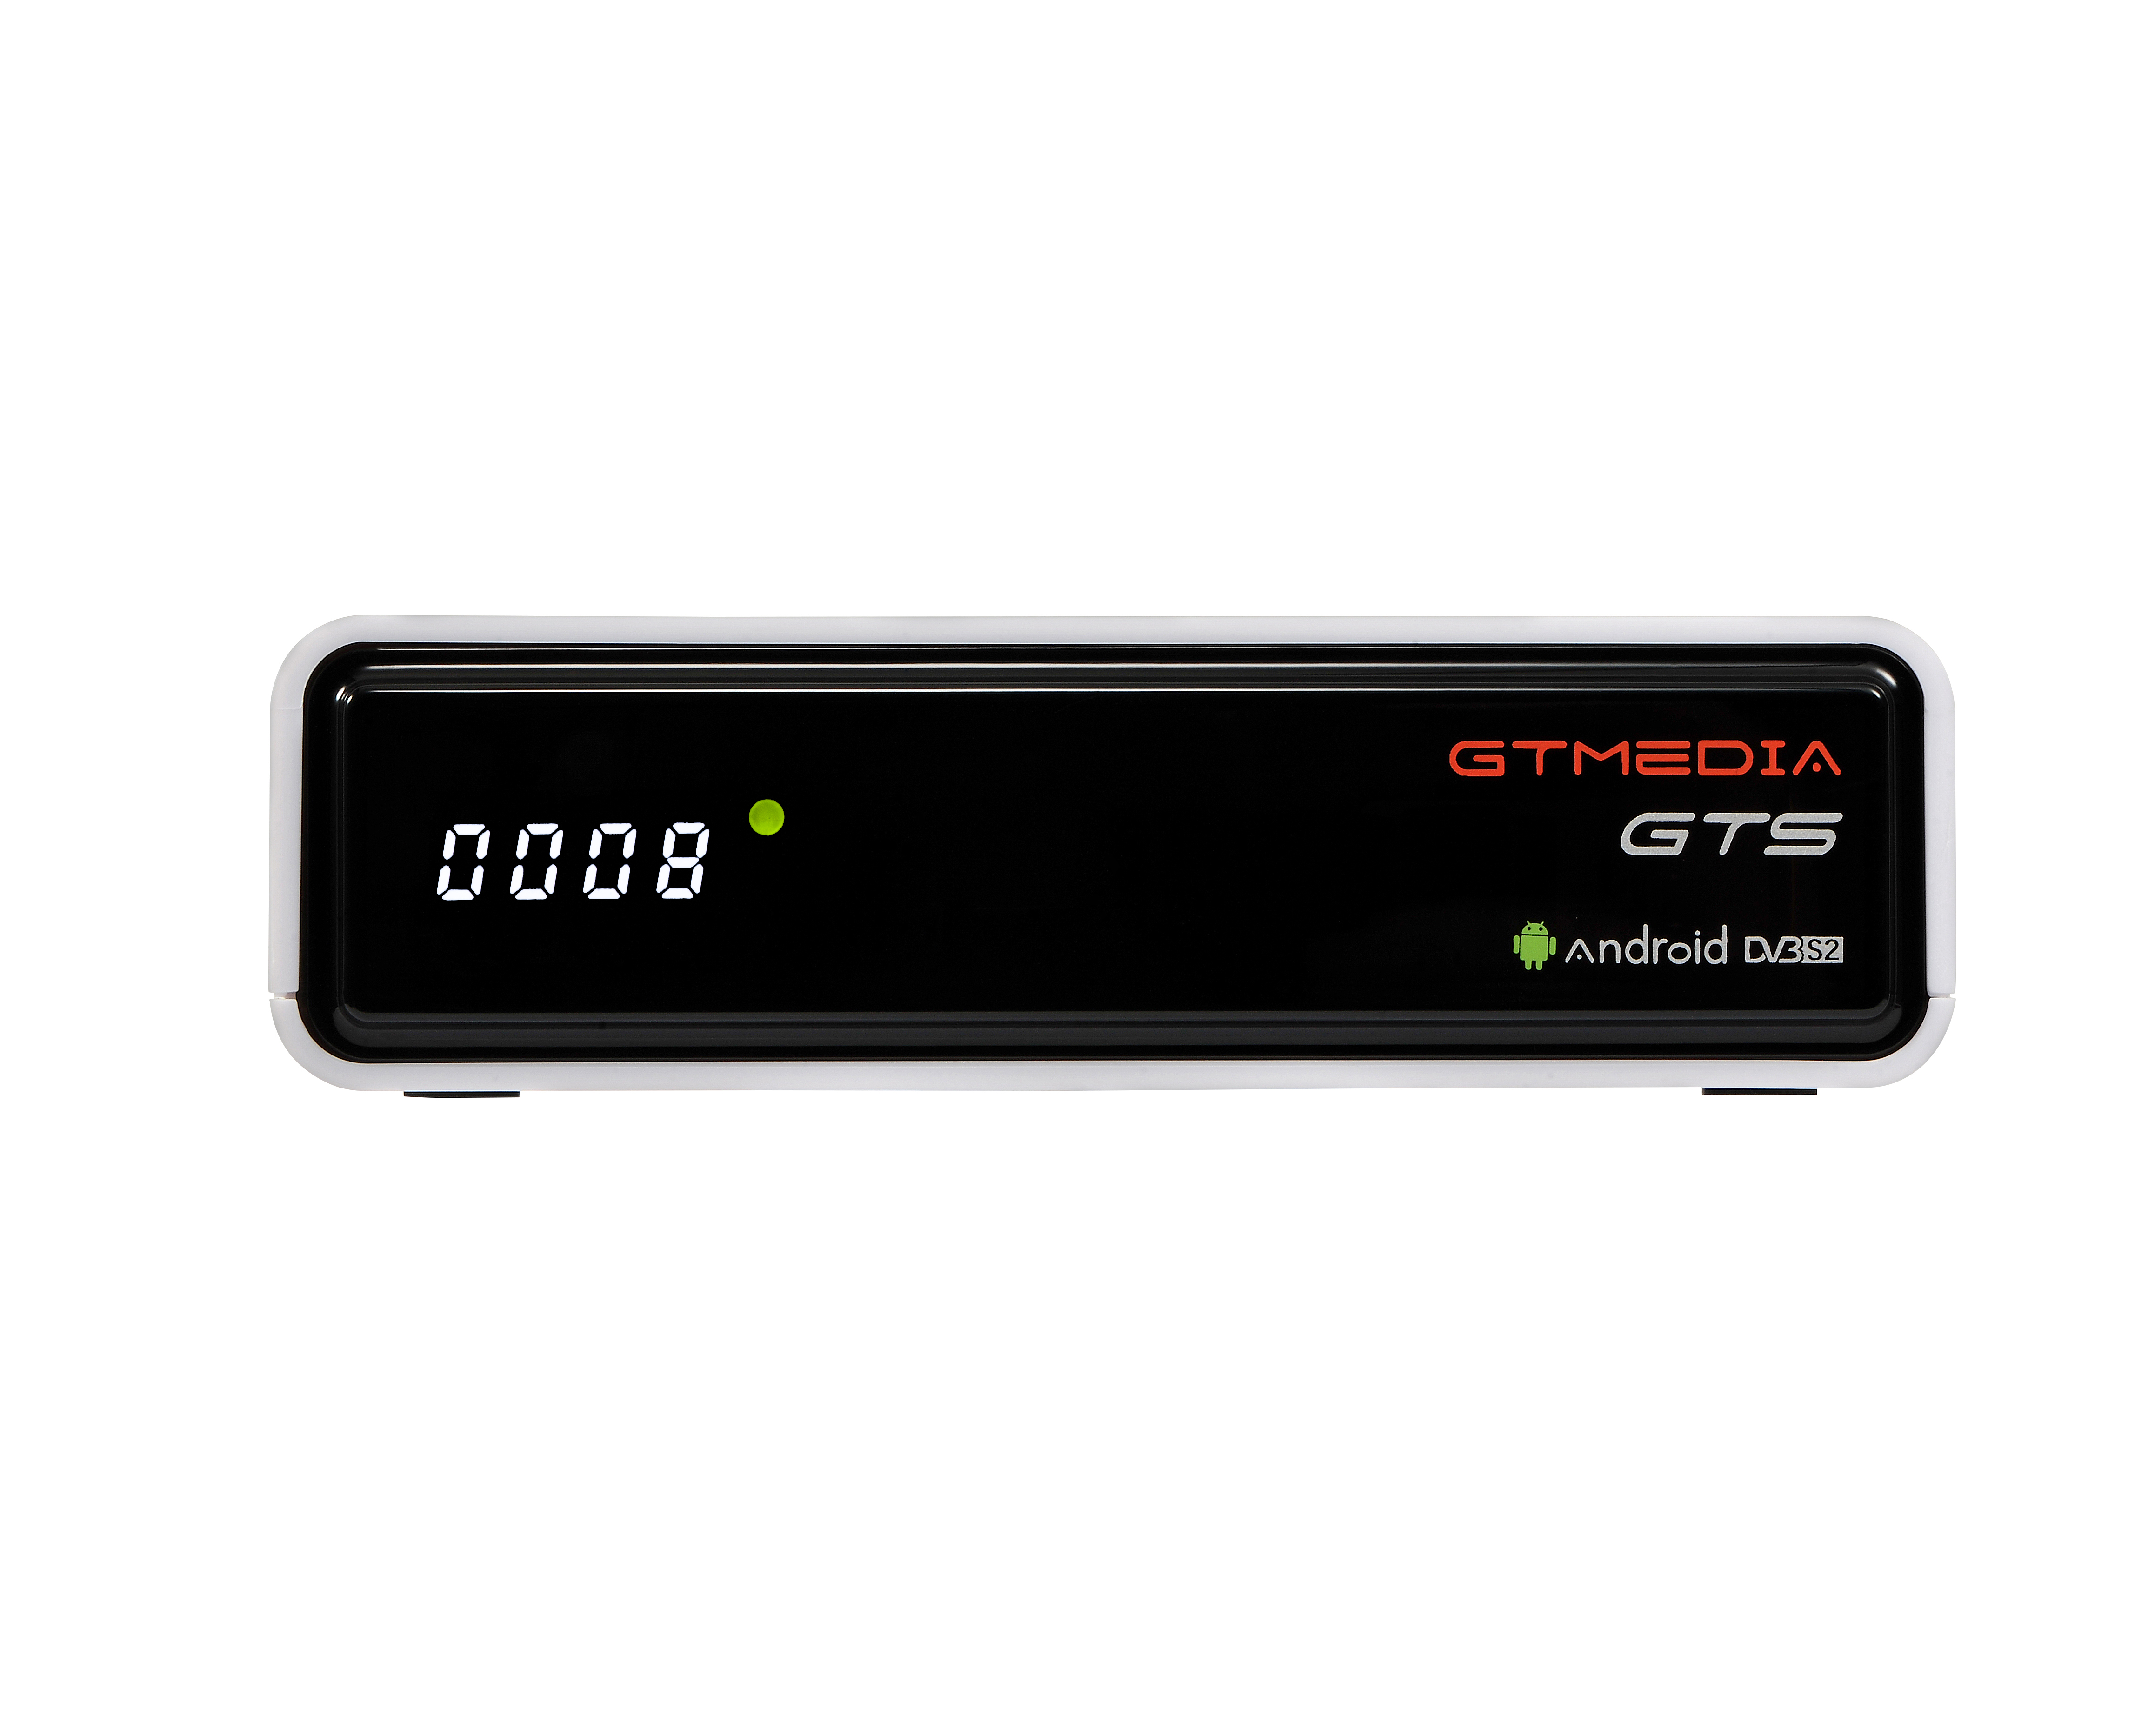 GTmedia GTS Android 6 0 TV BOX DVB S2 Amlogic S905D 2GB RAM 8GB ROM support iptv m3u cccam satellite receiver 1 year free iptv in Set top Boxes from Consumer Electronics